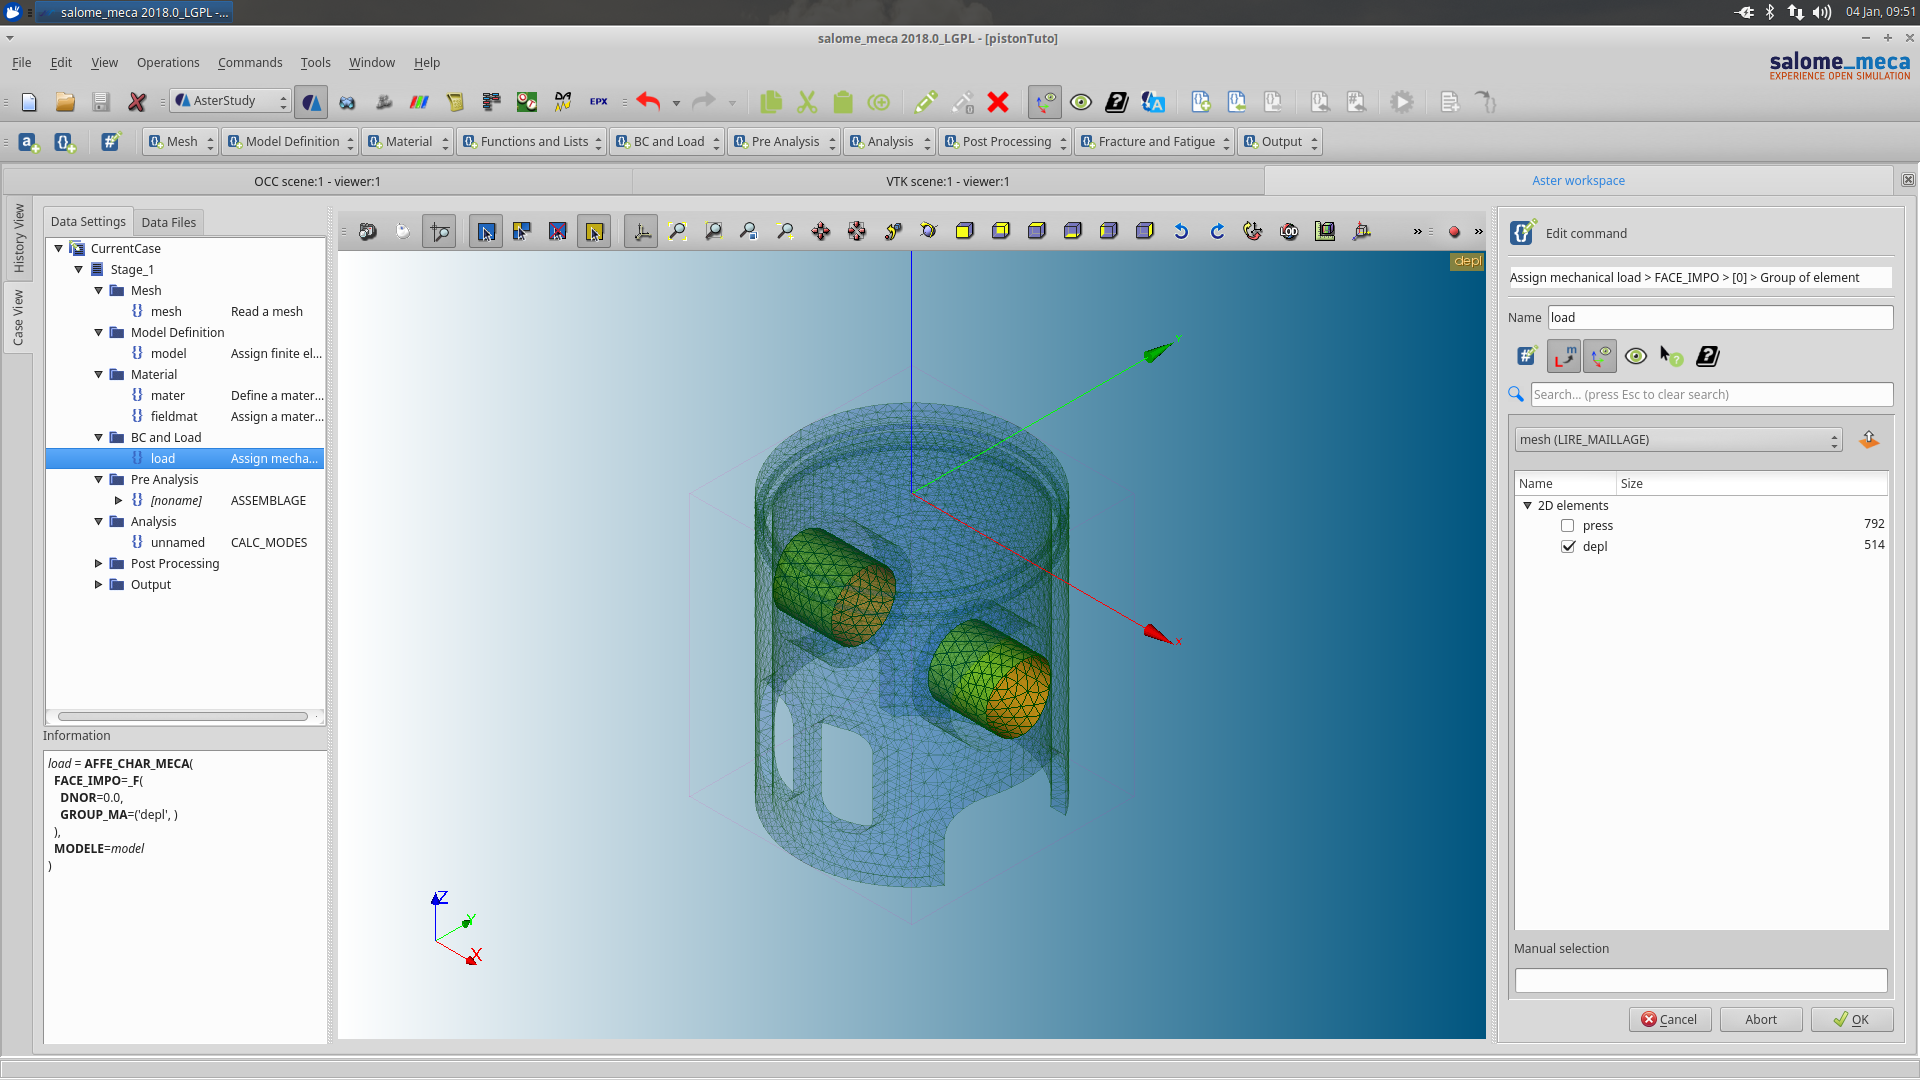 Free cad cam software for windows 10 | 14 Top Free CAD